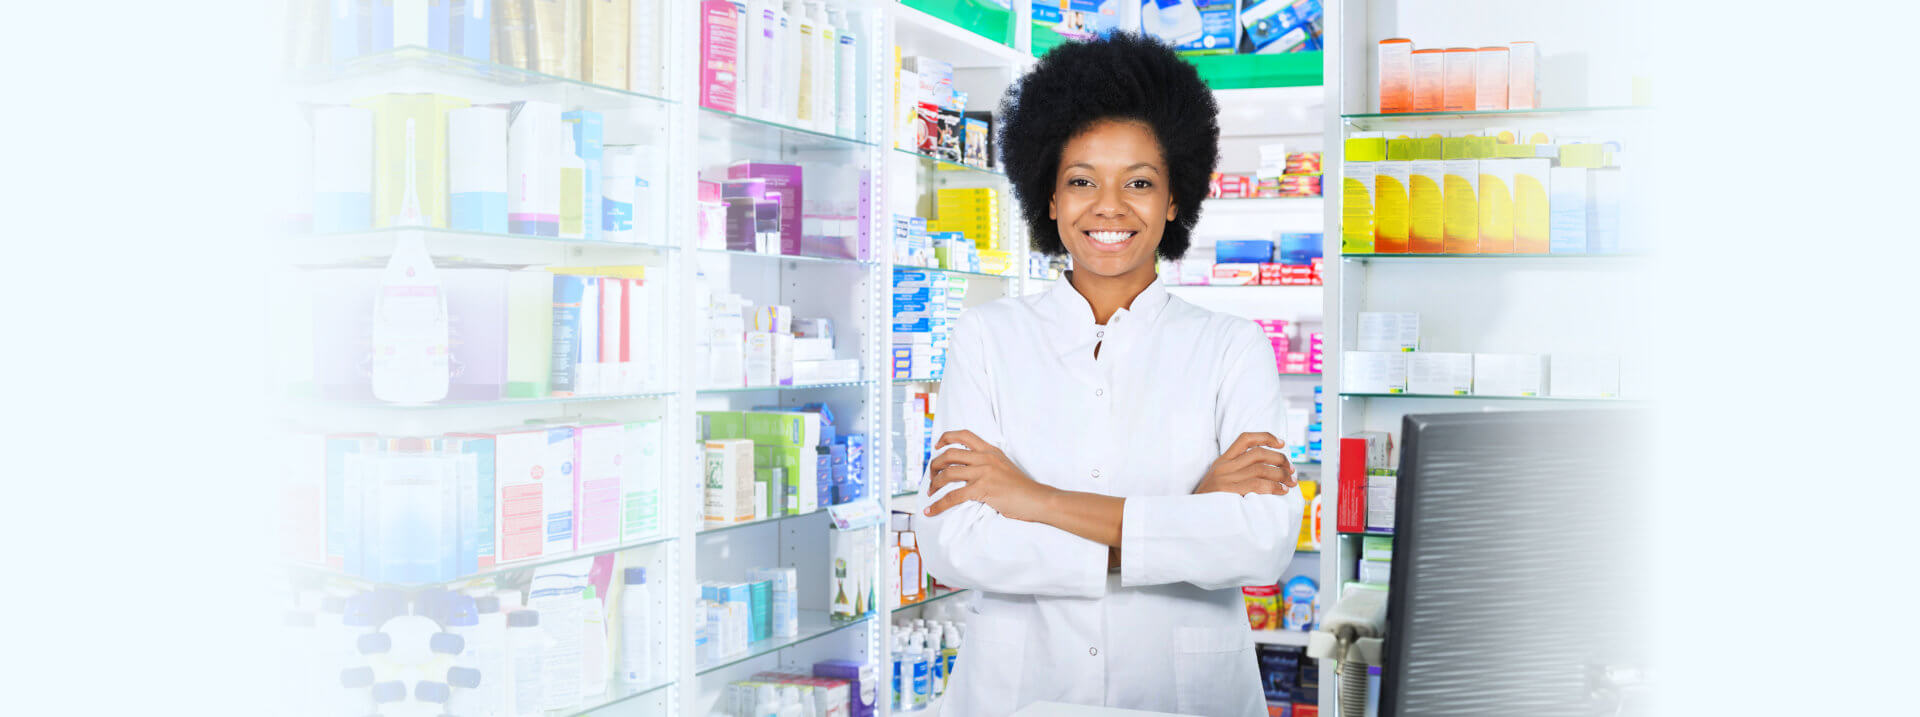 A pharmacist standing while smiling